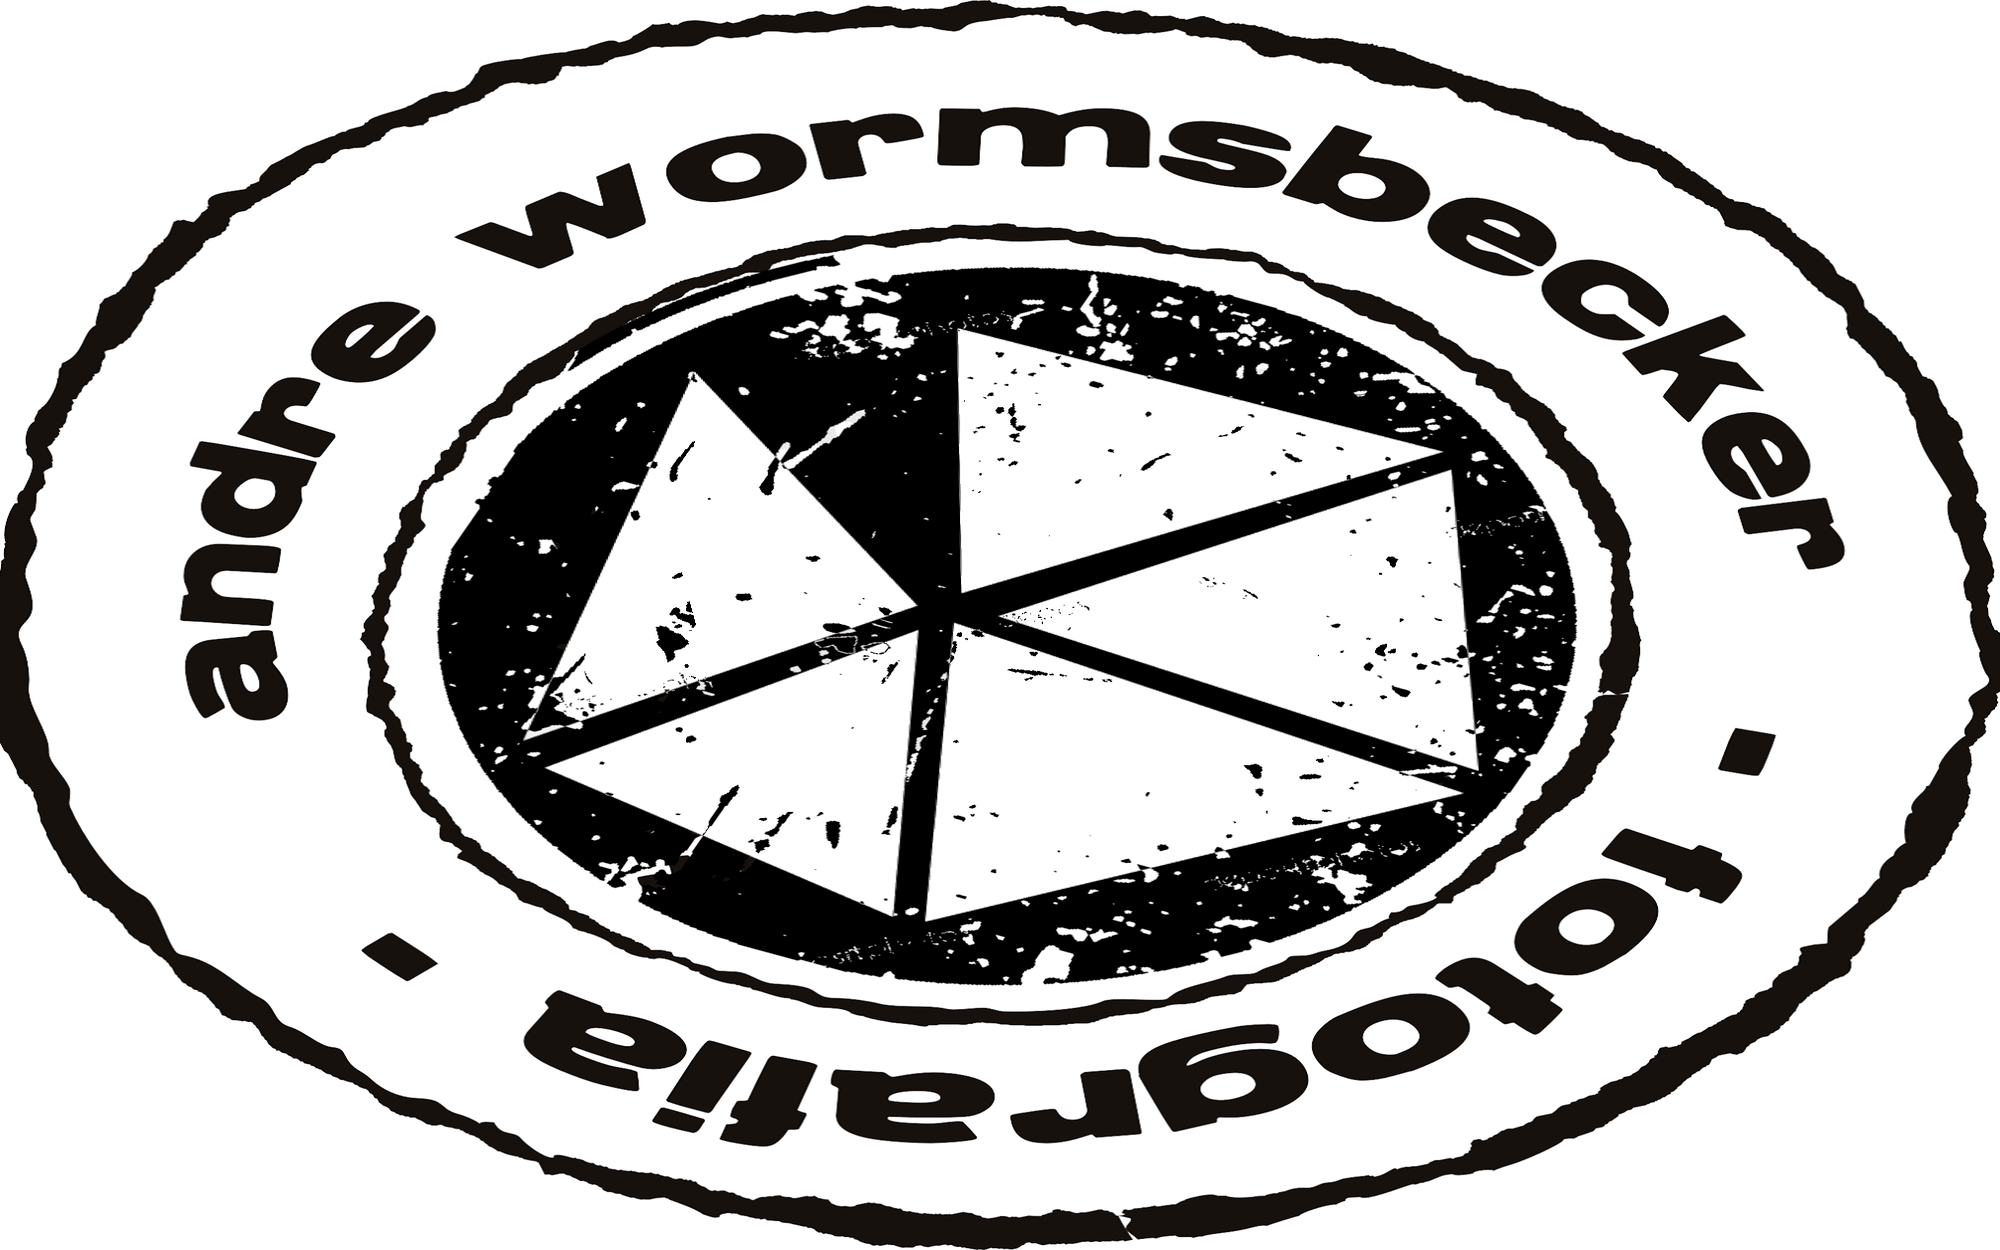 Interview with Andre Wormsbecker!